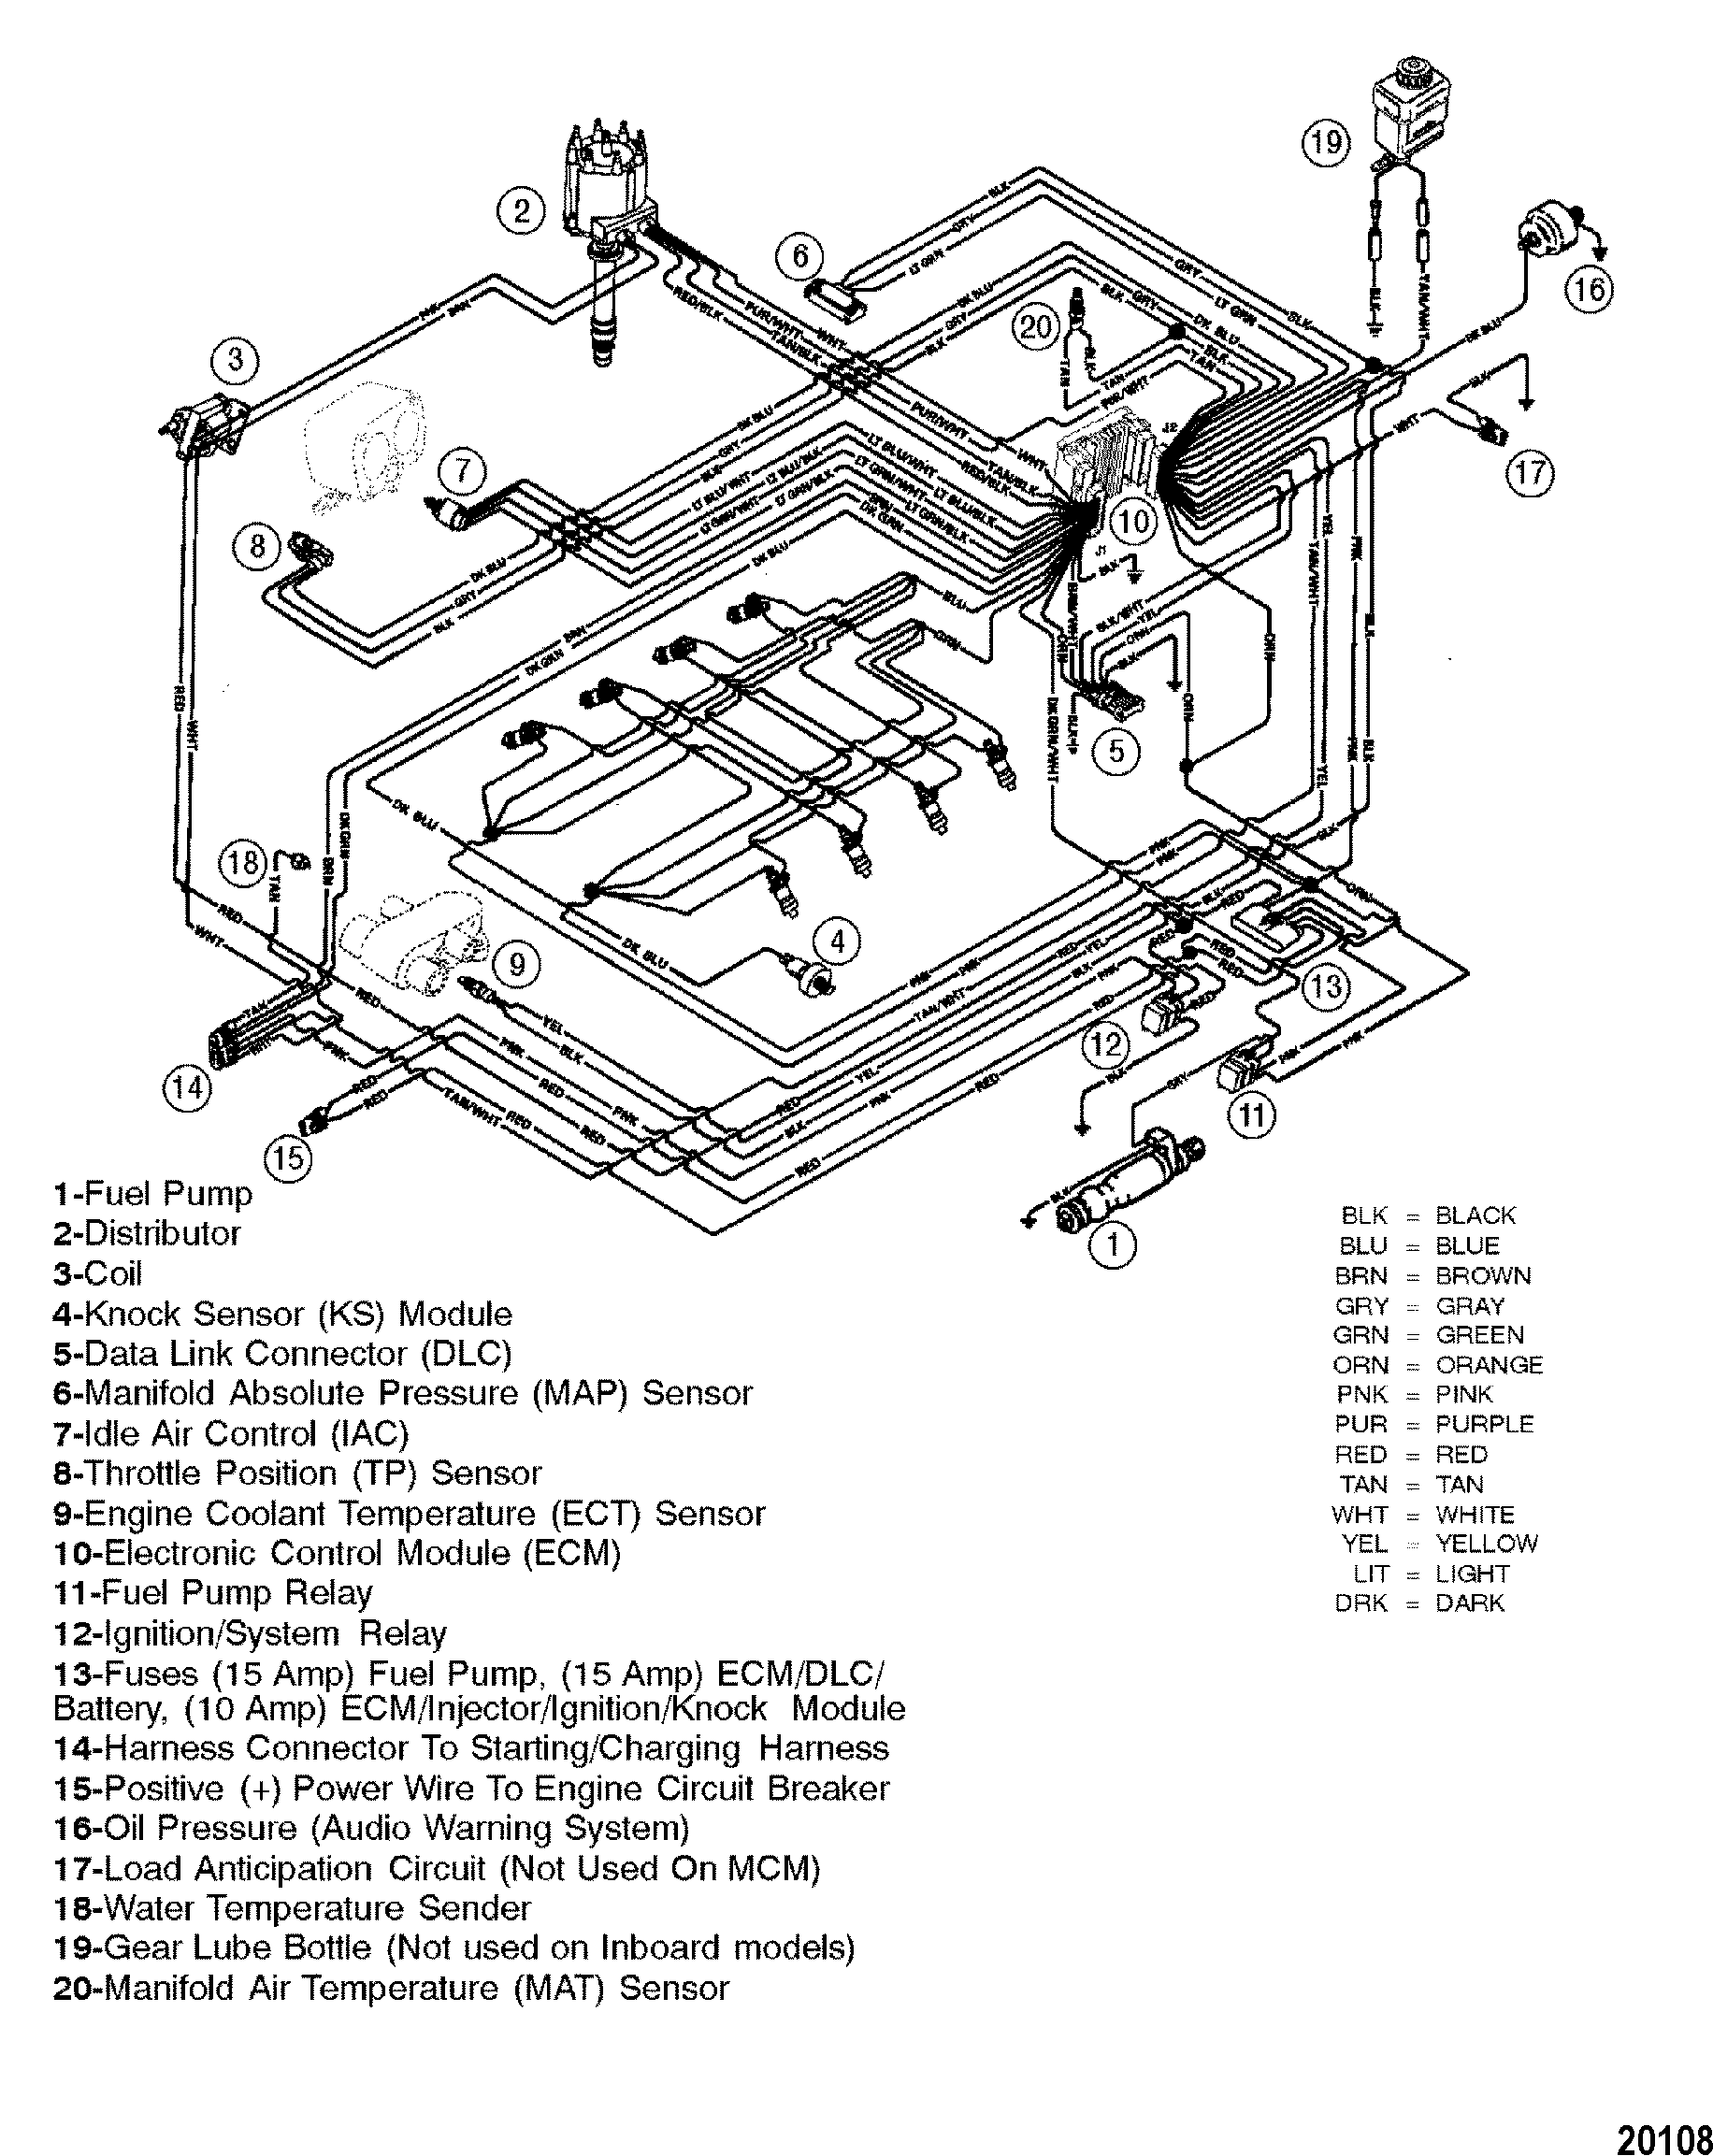 Gm 350 Engine Diagram Change Your Idea With Wiring Design 1979 Chevy Corvette Schematic Free Download Just Another Blog U2022 Rh Easylife Store Marine Choke Parts